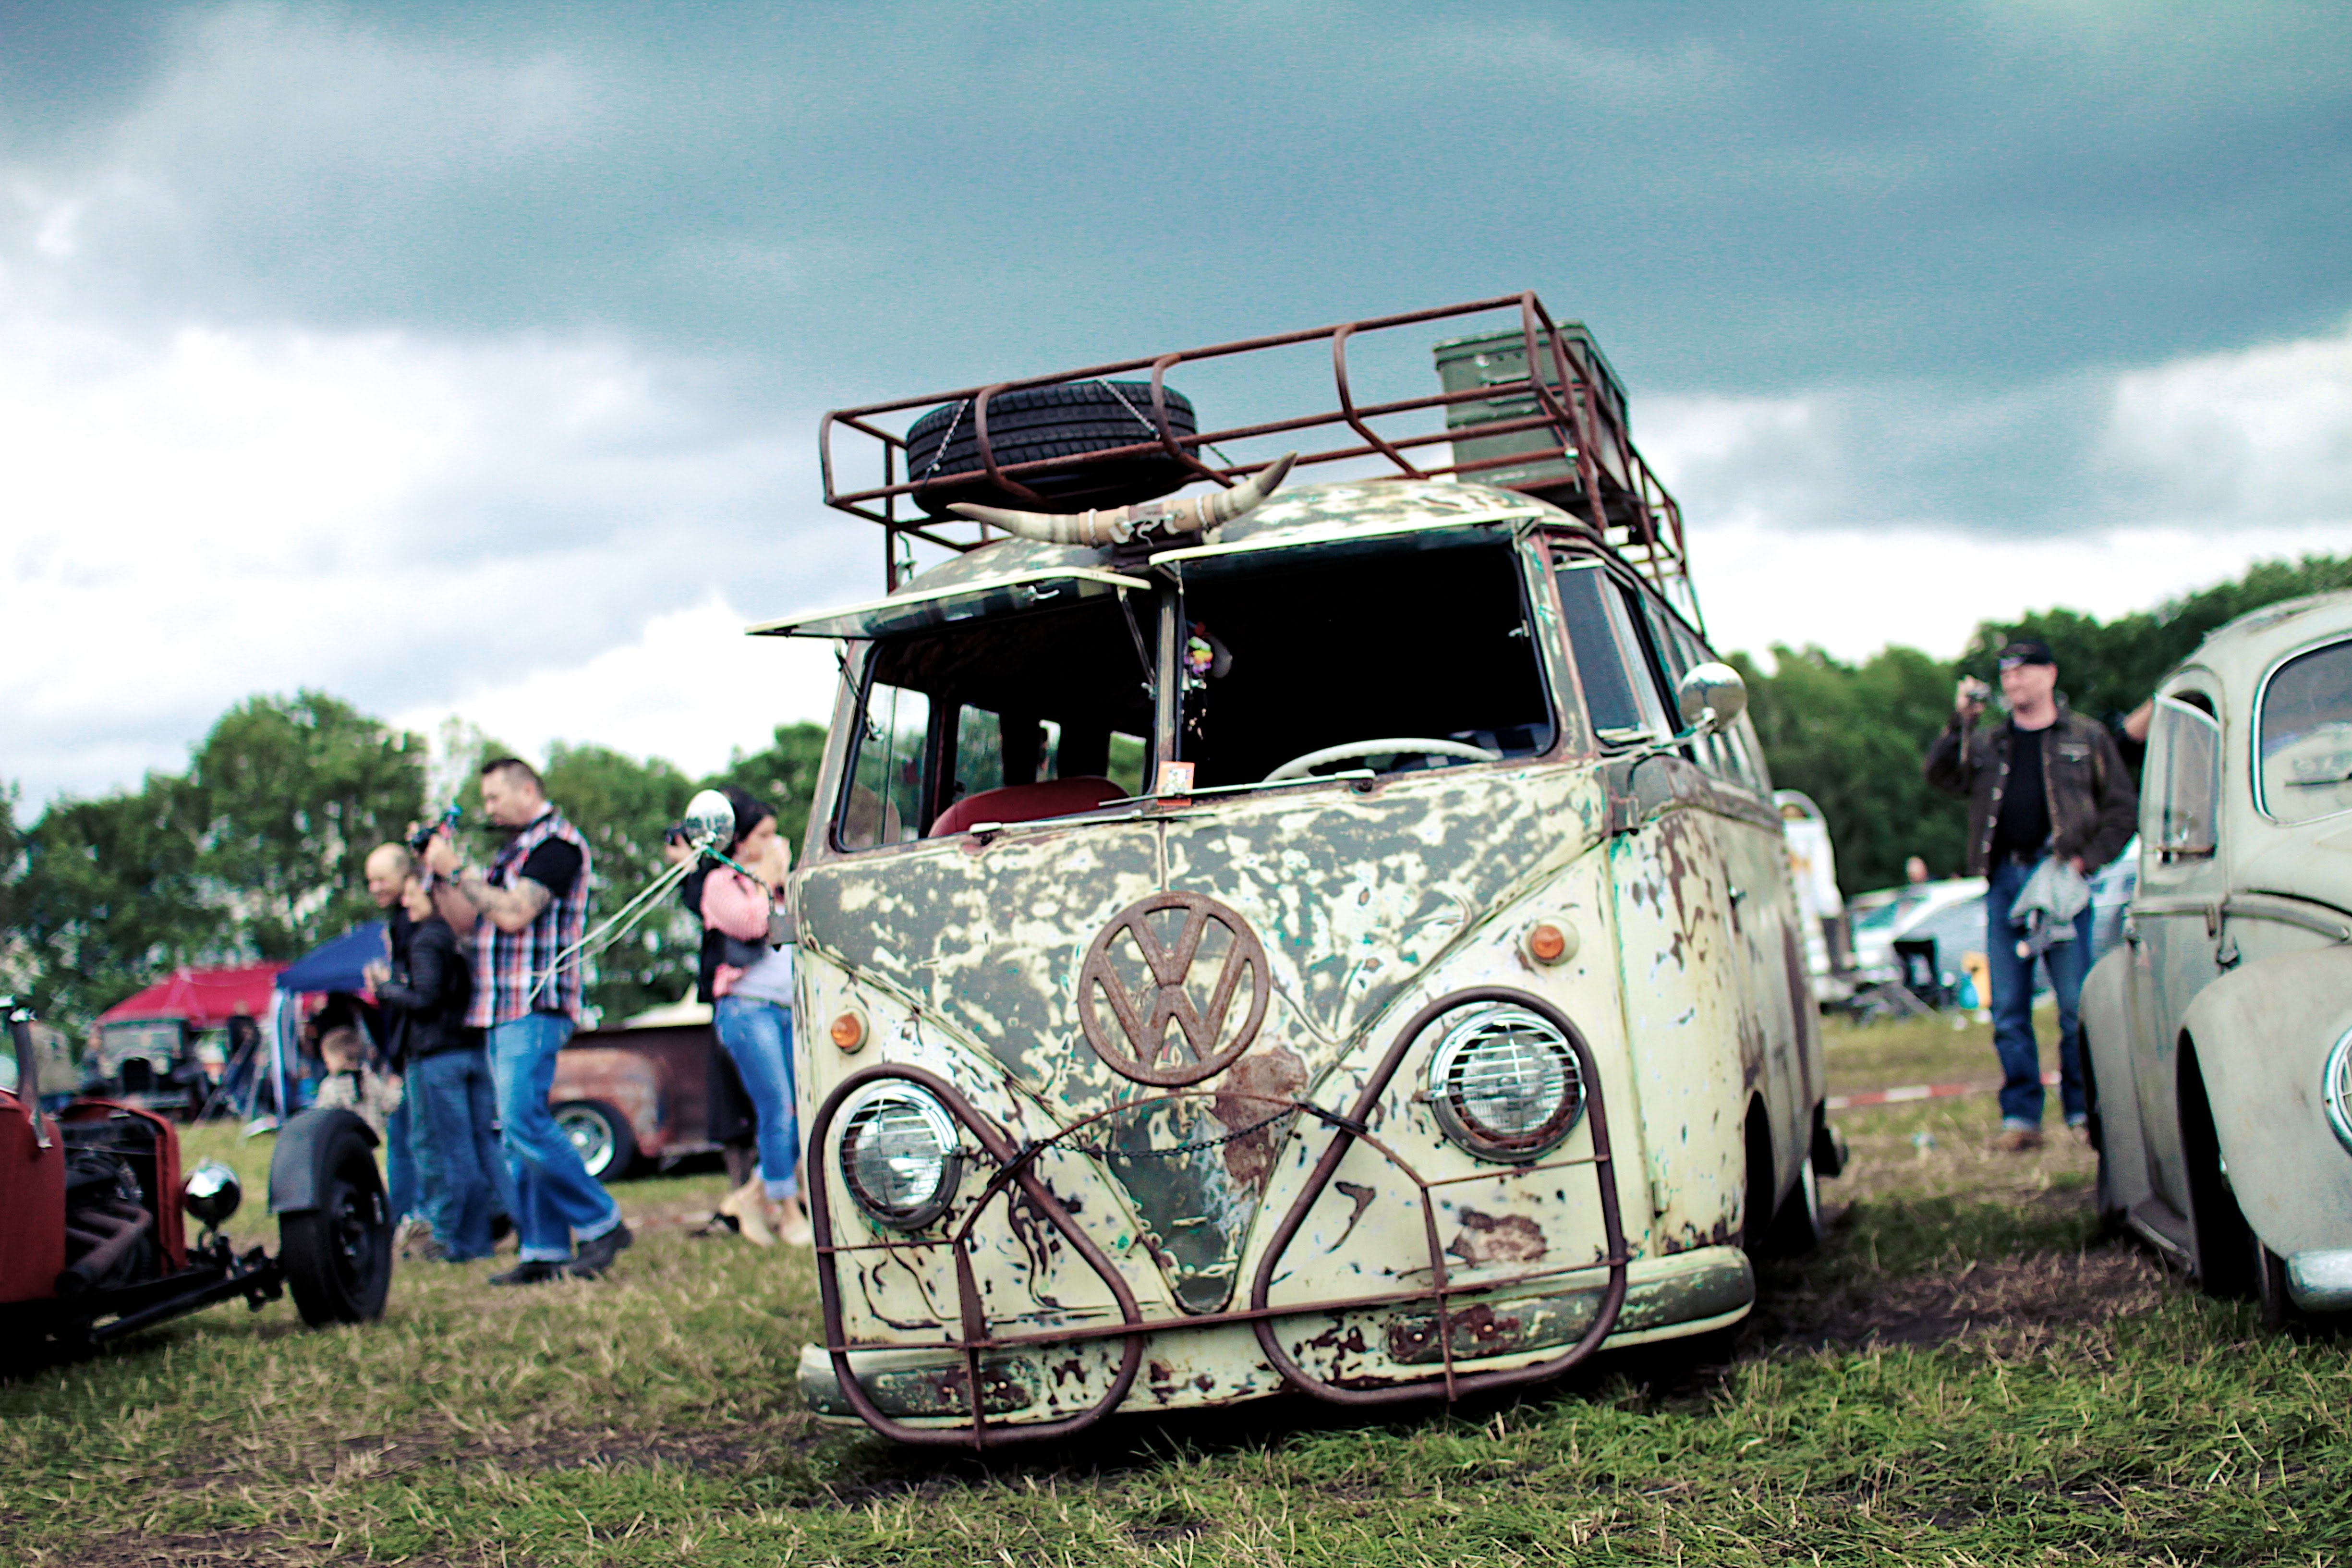 People view rusted vintage Volkswagon bus at a car show.